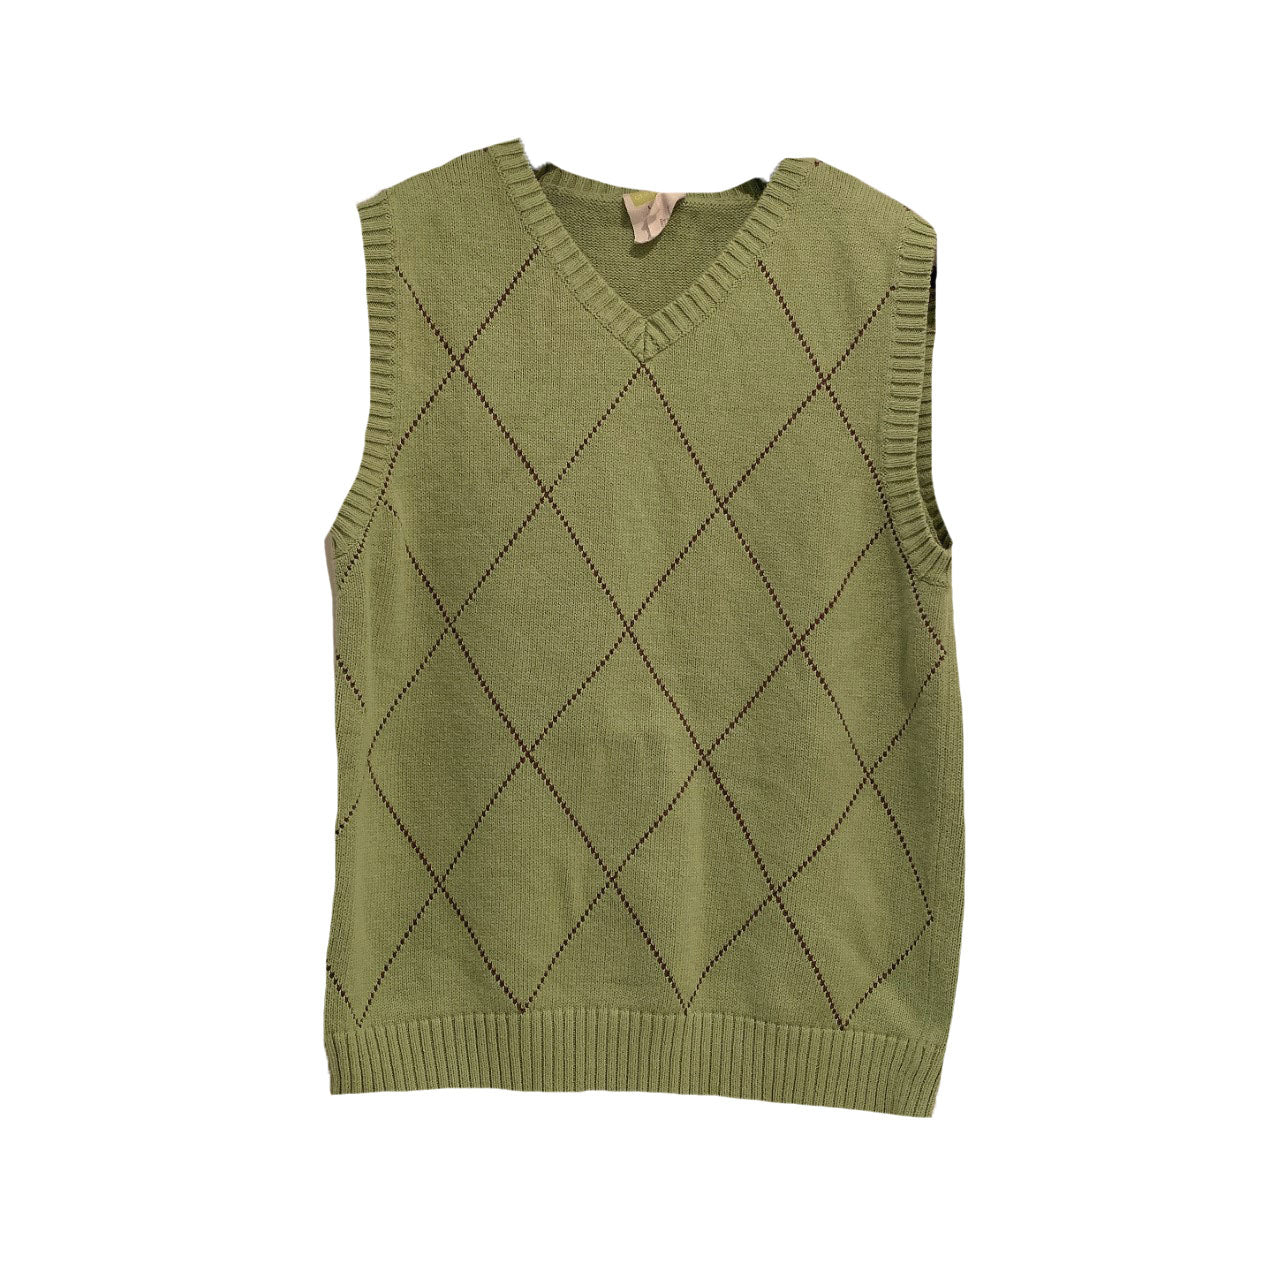 Pistachio green sweater vest